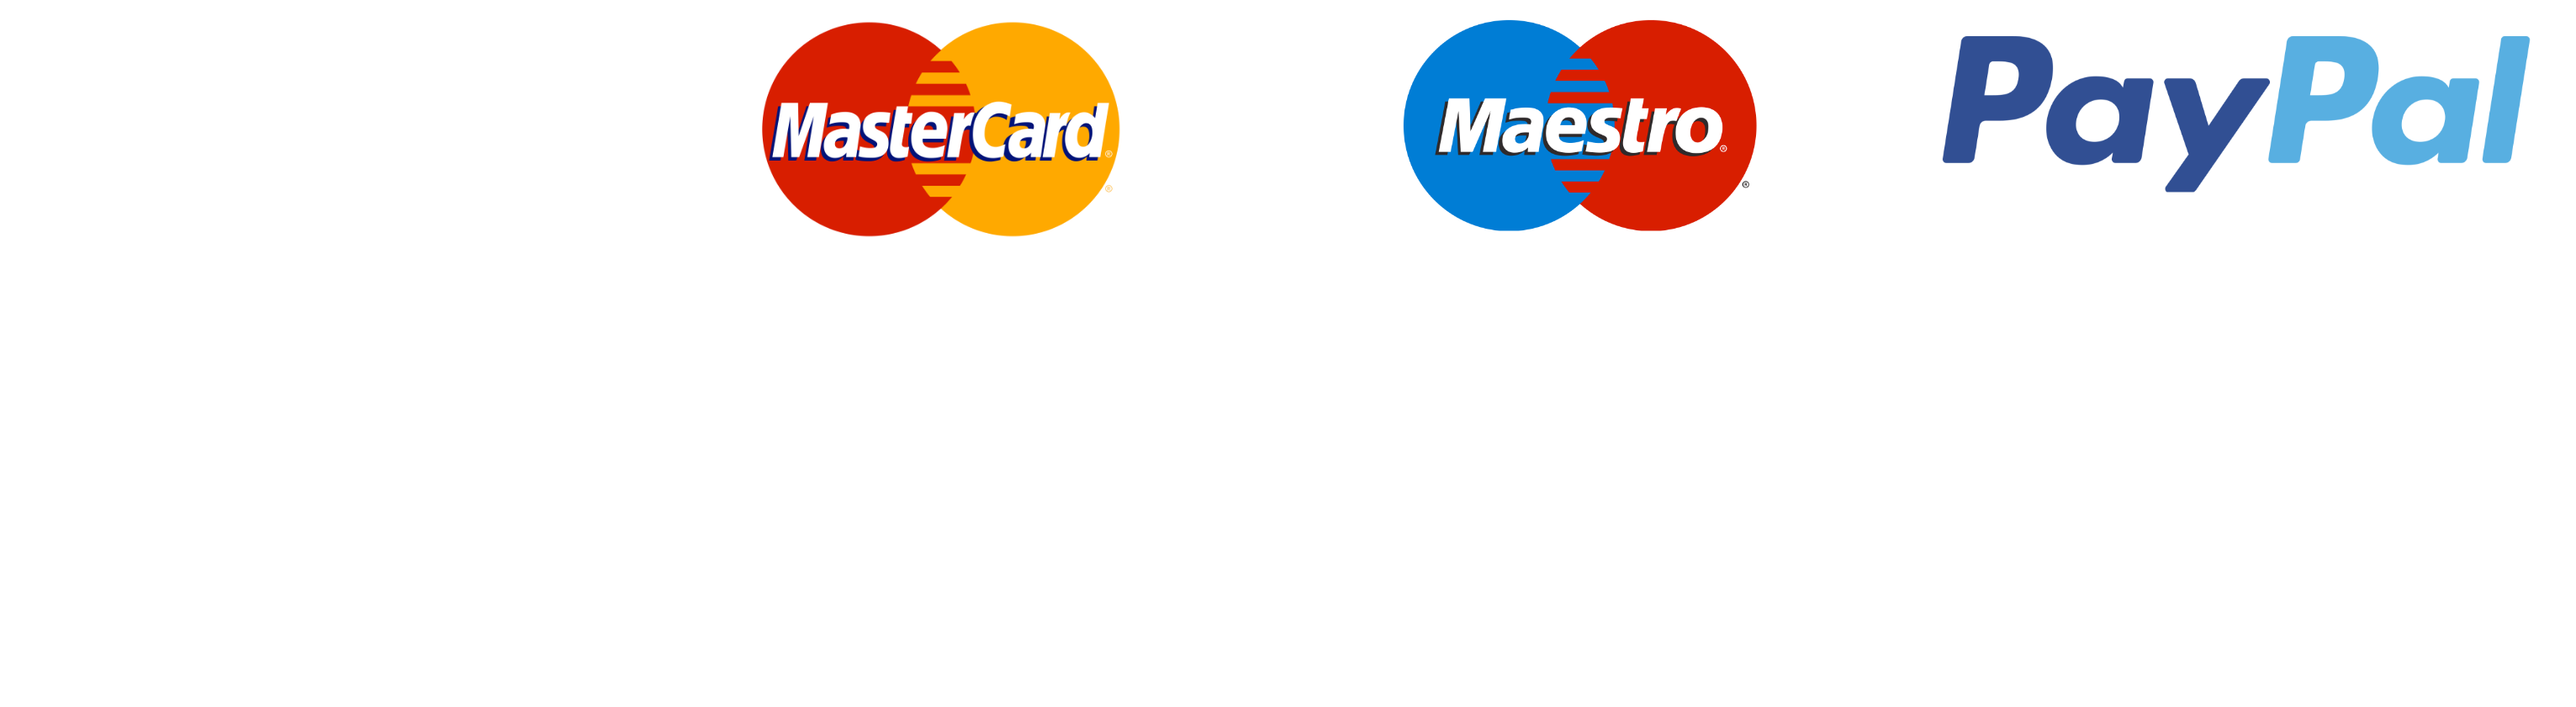 GAME - Black Friday 2019 Deals & Cyber Monday | GAME